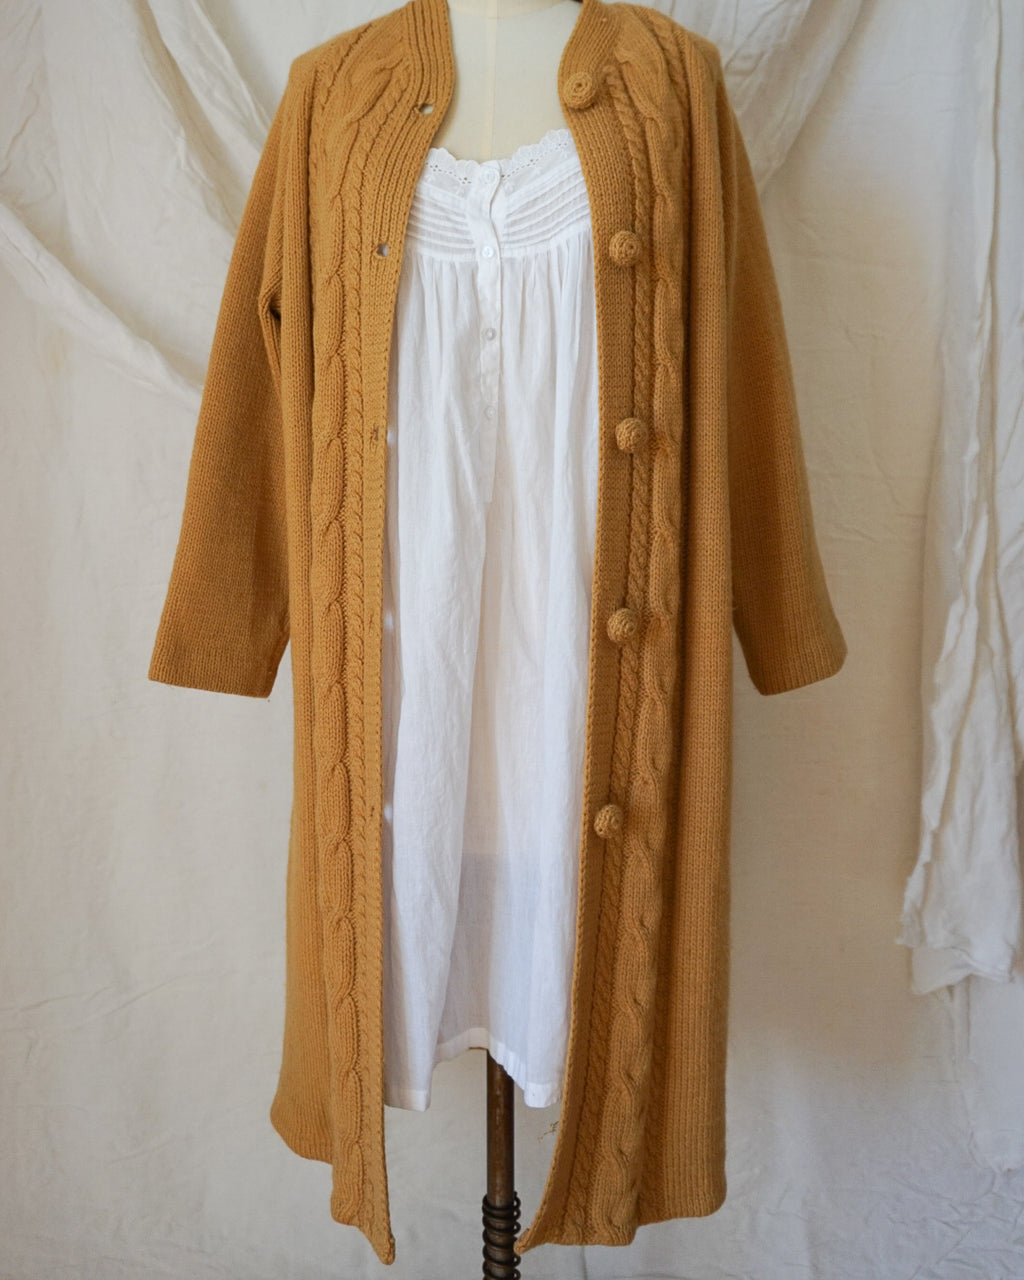 Vintage Hand-Knit Long Cardigan